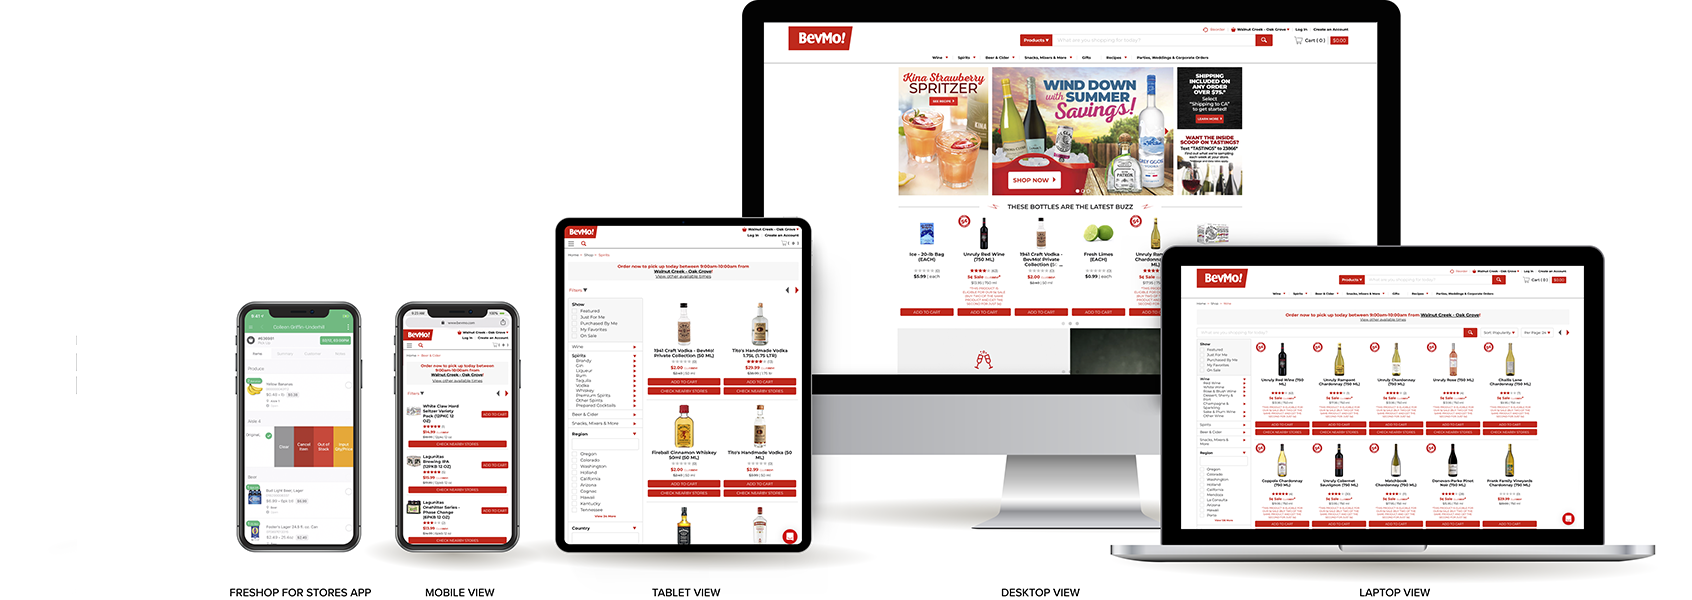 BEVMO-apple-mockups-2019-template-web